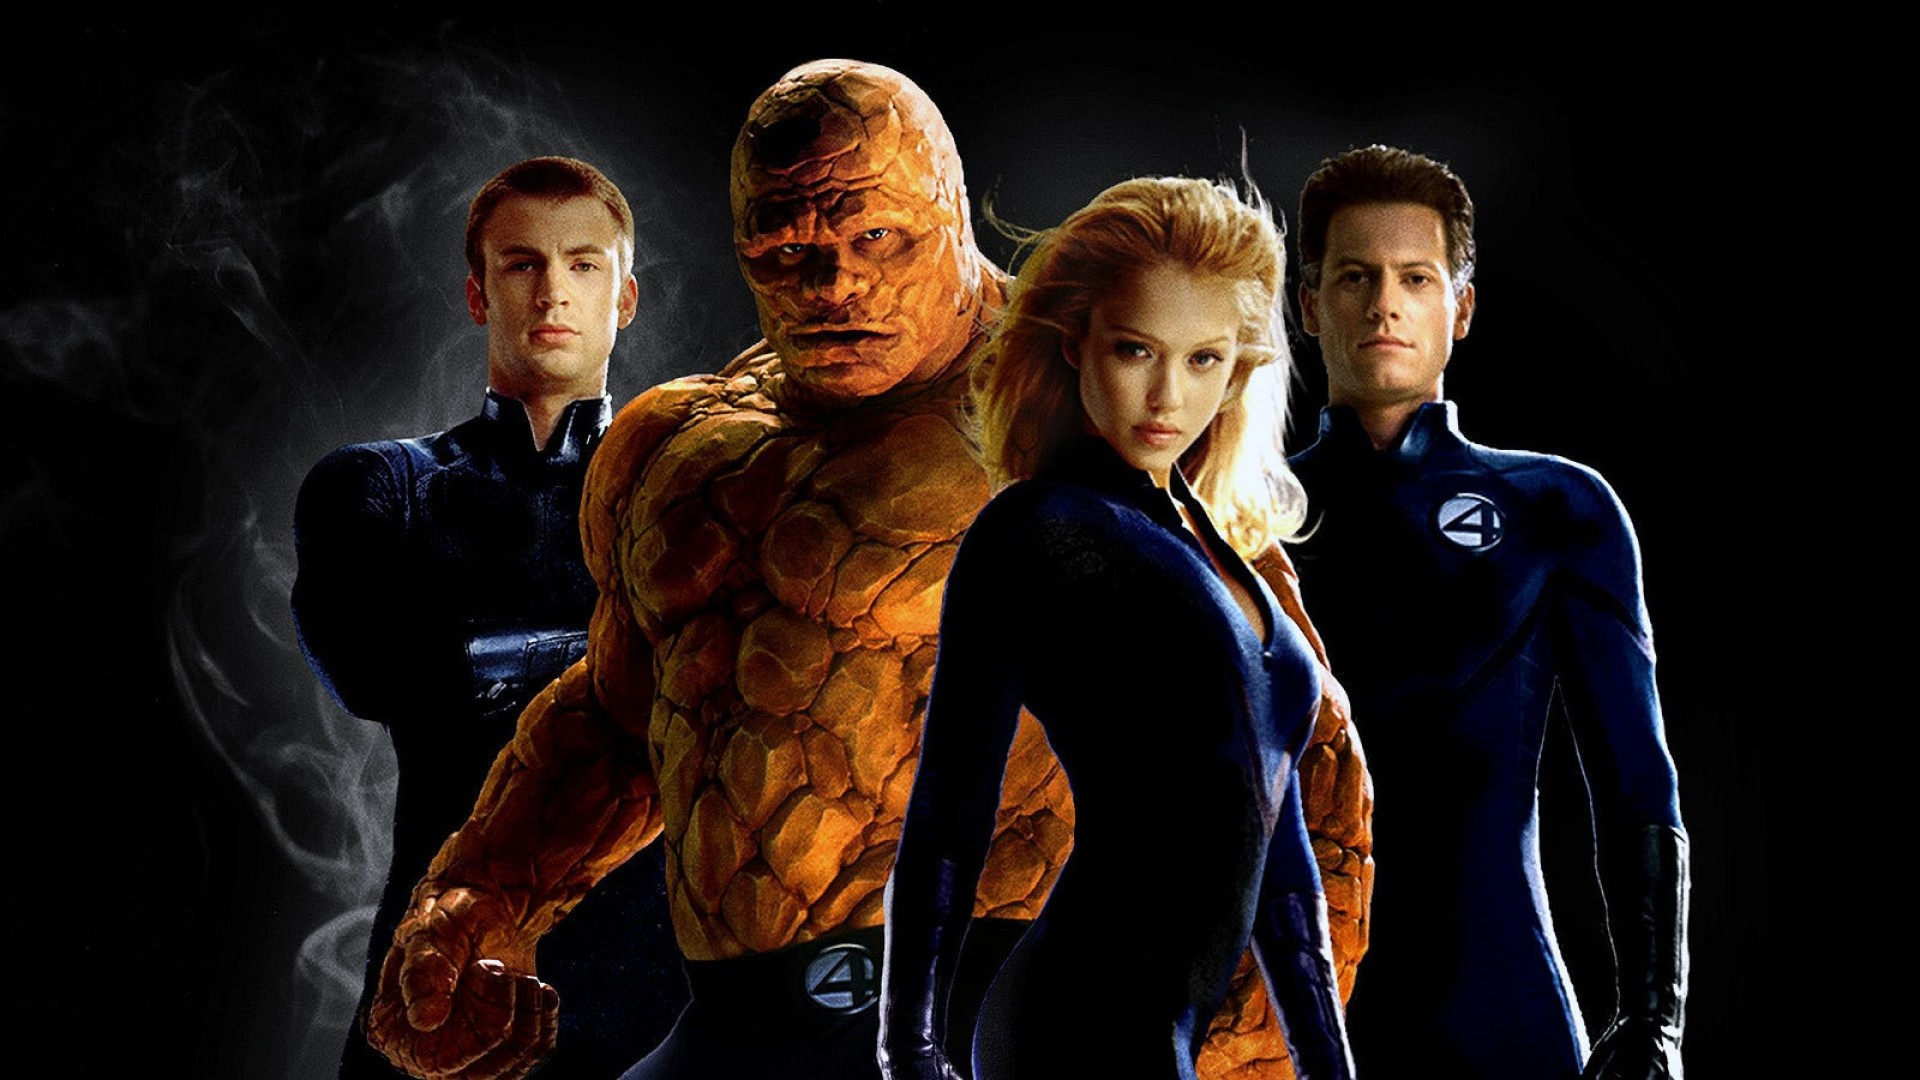 Res: 1920x1080, ... superheroes news, pictures and videos and learn all about mutants,  fantastic 4, superheroes from wallpapers4u.org, your wallpaper news source.